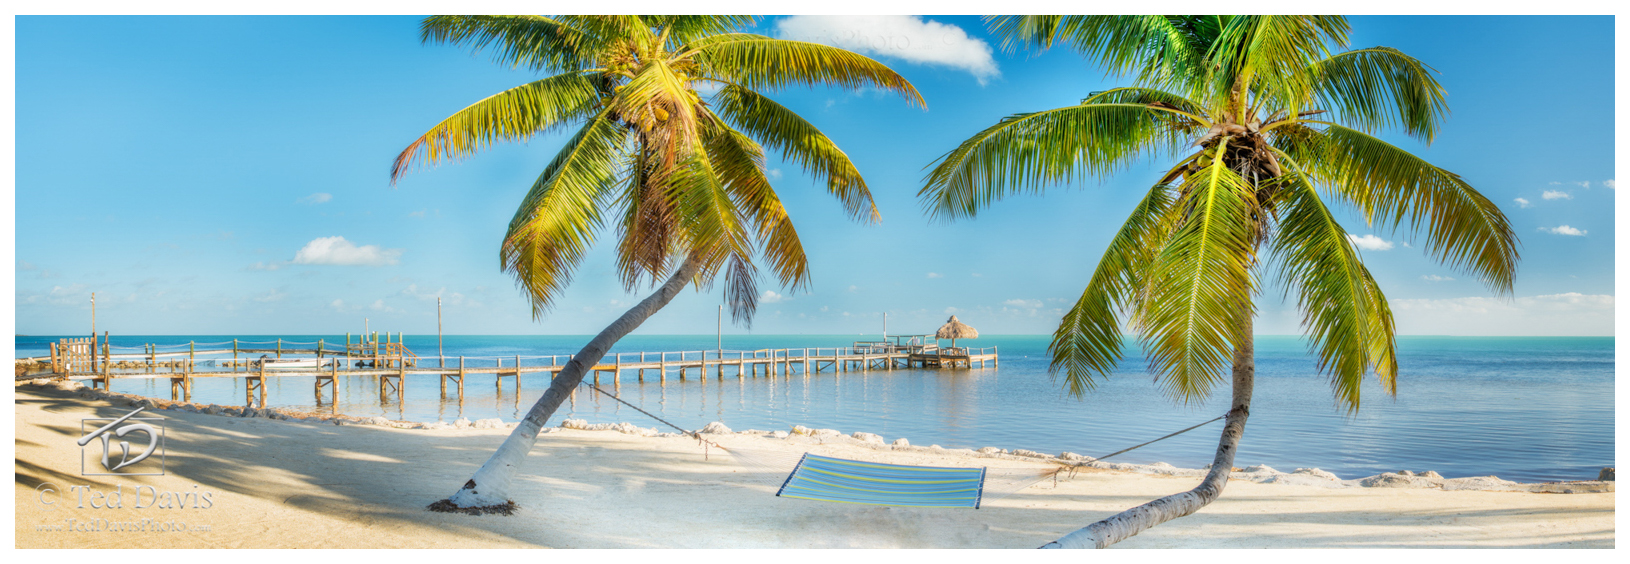 florida, keys, summer, dock, jetty, blue, breeze, perfect palms, hammock, sand, cloud, sky